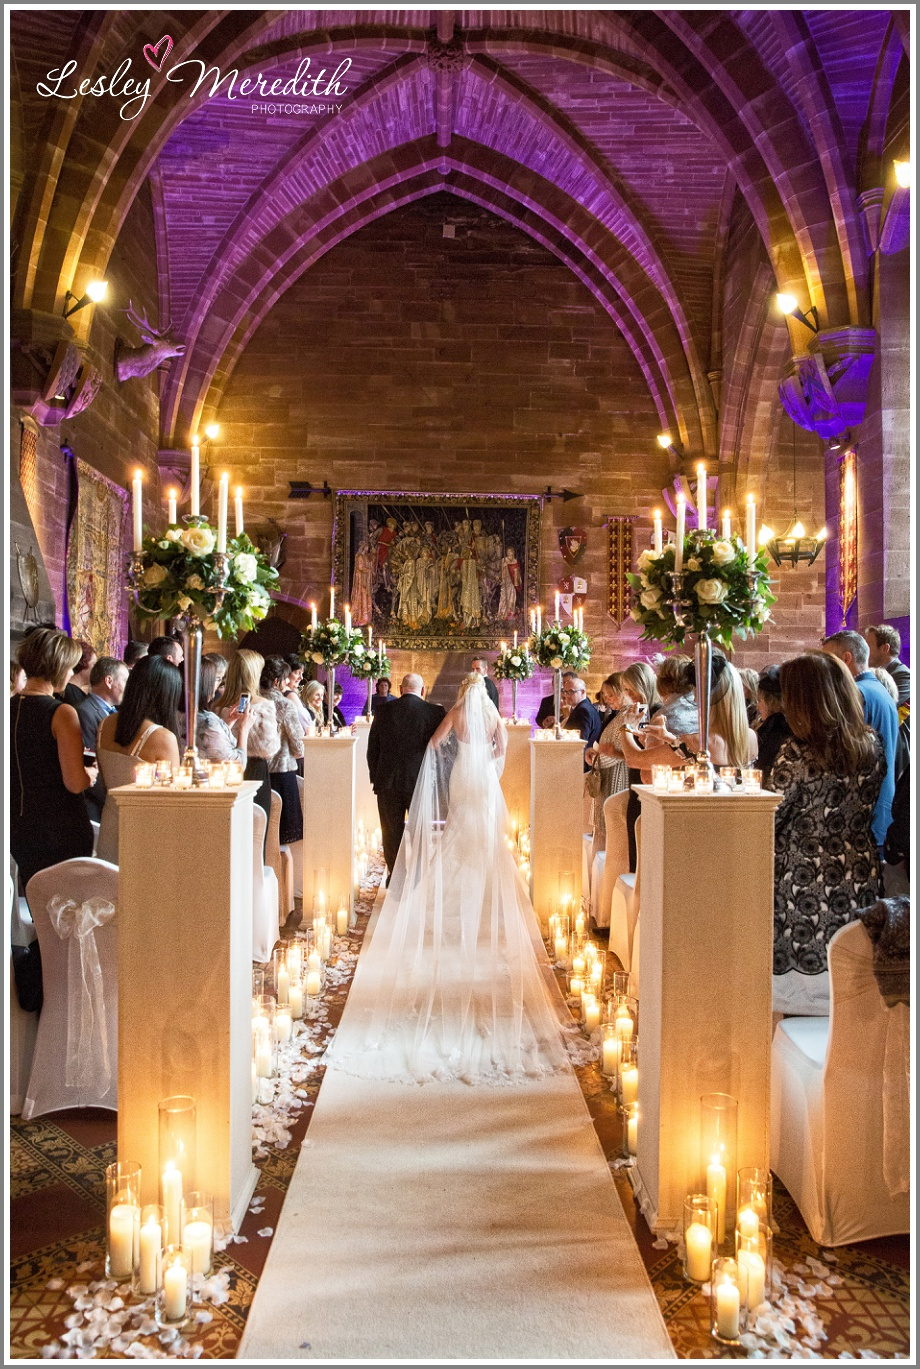 Wedding veil glides down the aisle at Peckforton Castle